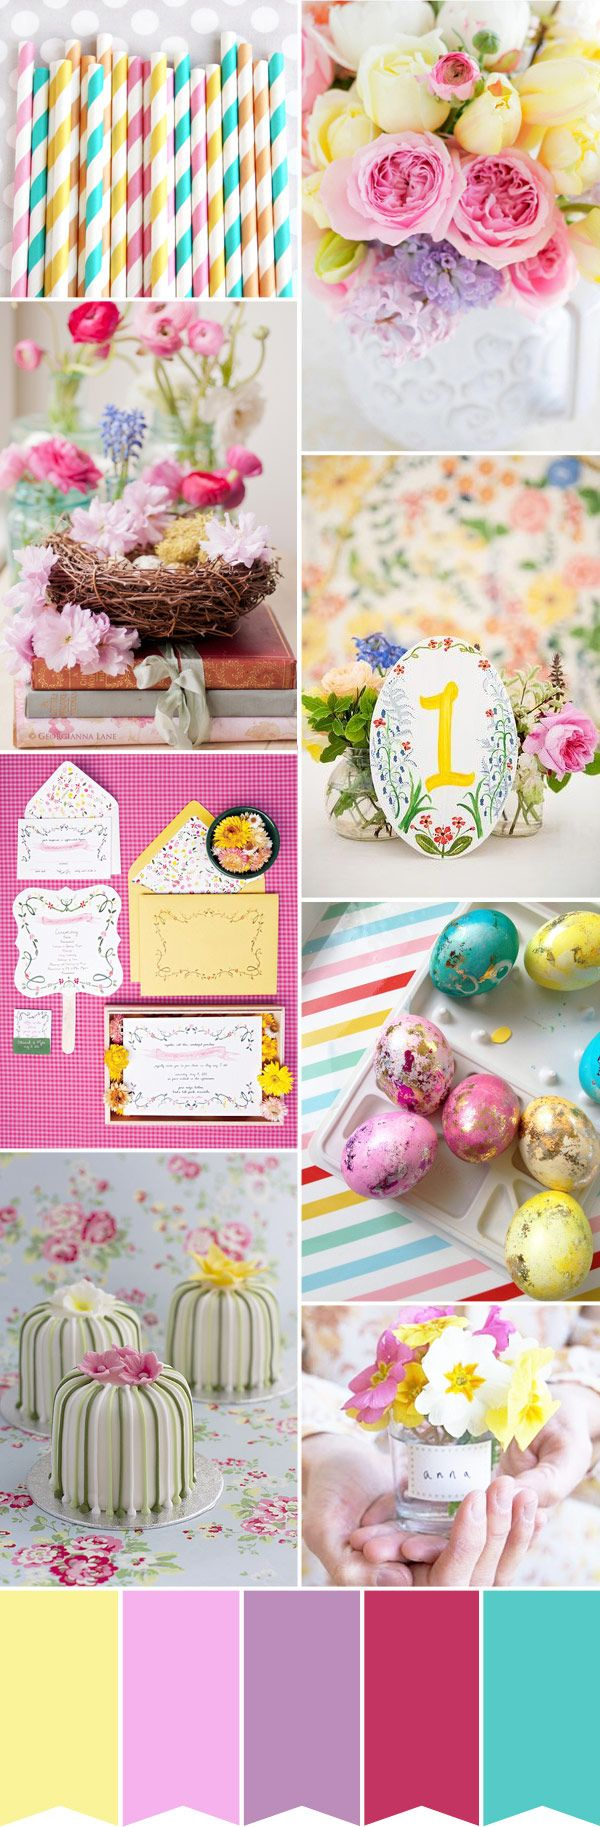 Easter-Wedding-Inspiration - Read More on One Fab Day http://onefabday.com/spring-wedding-palette-easter-wedding-inspiration/